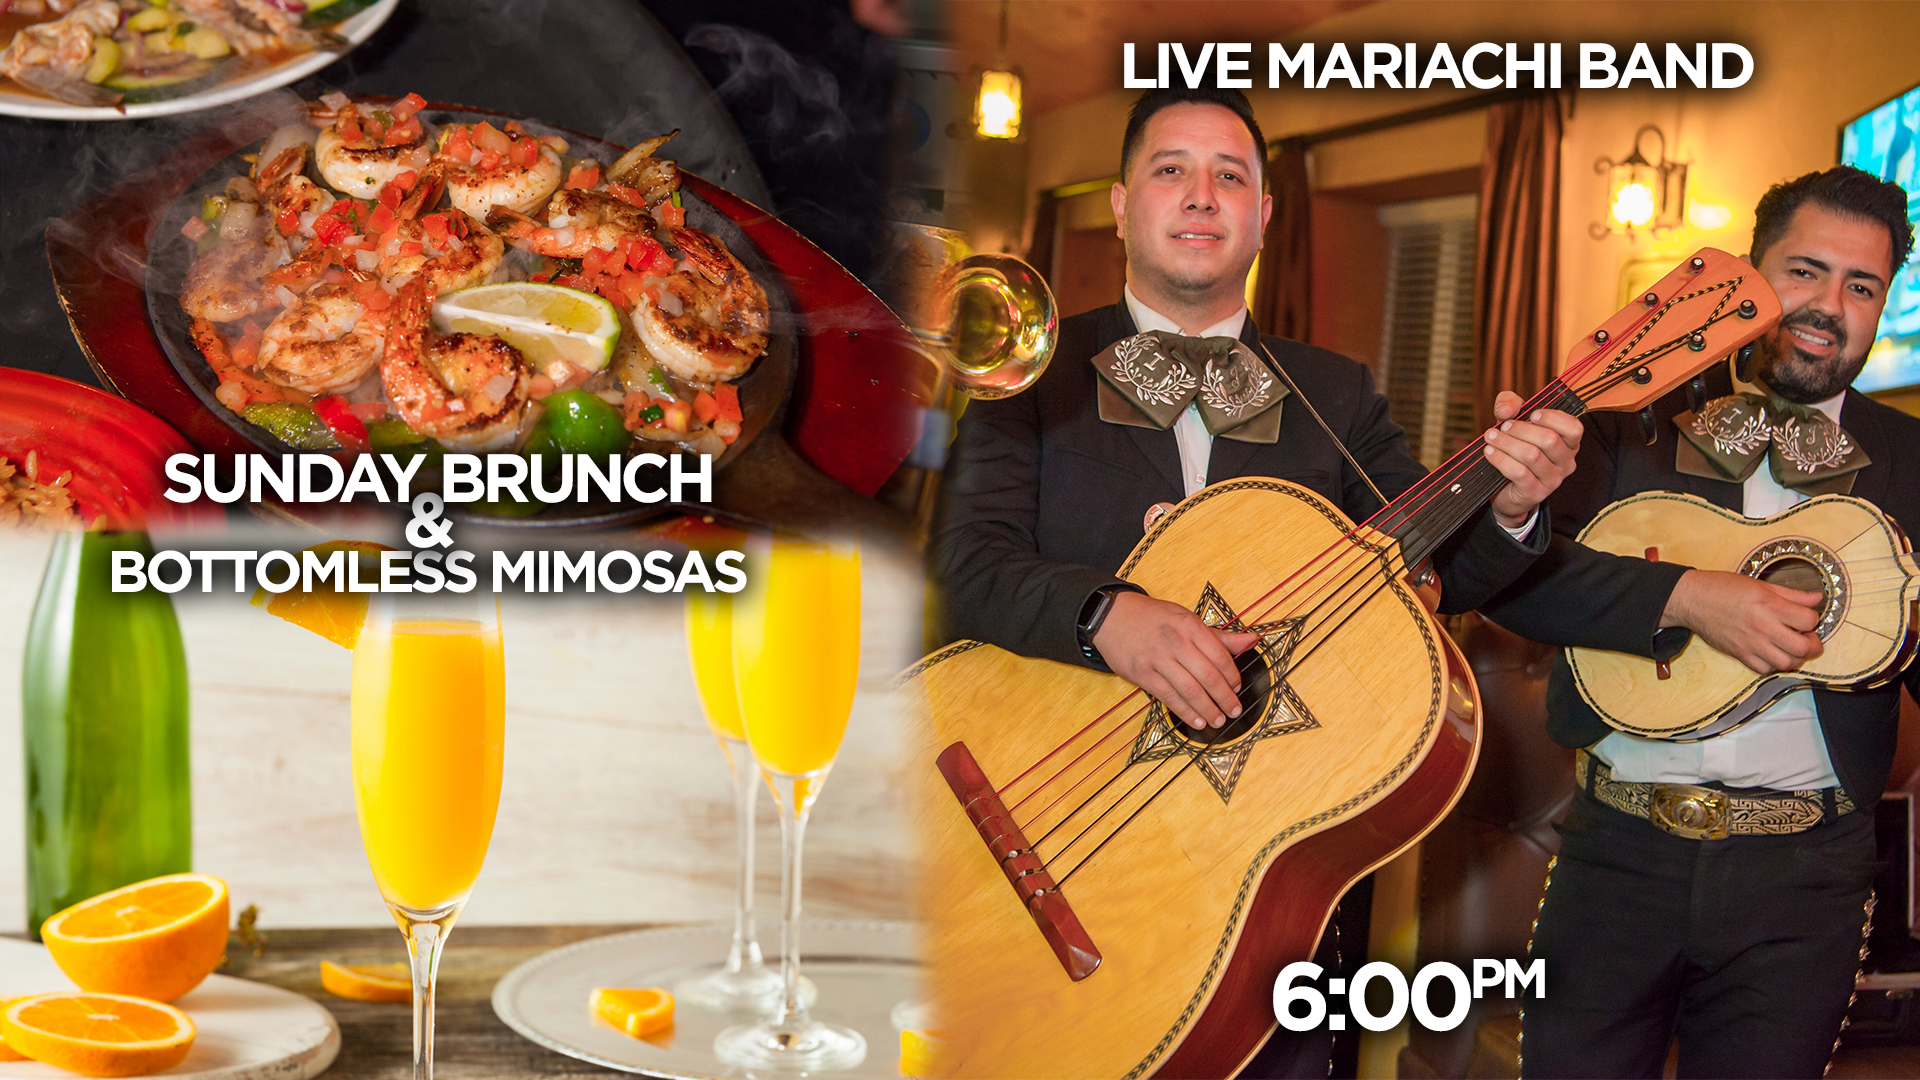 SUNDAY - Sunday brunch buffet along with bottomless mimosas & at 6pm start enjoying some Traditional Mexican Mariachi.